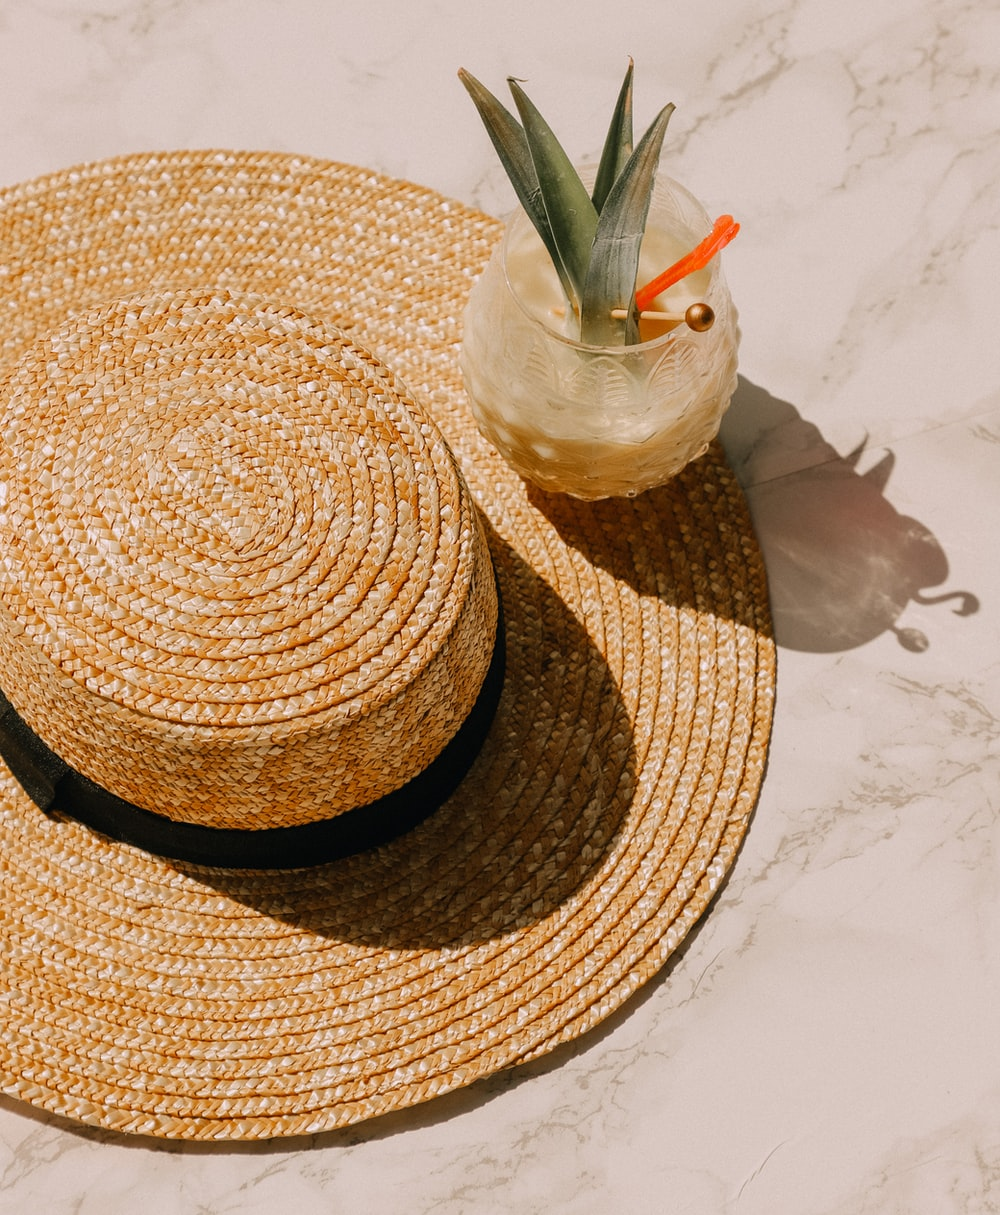 pineapple glass drink on brown sunhat